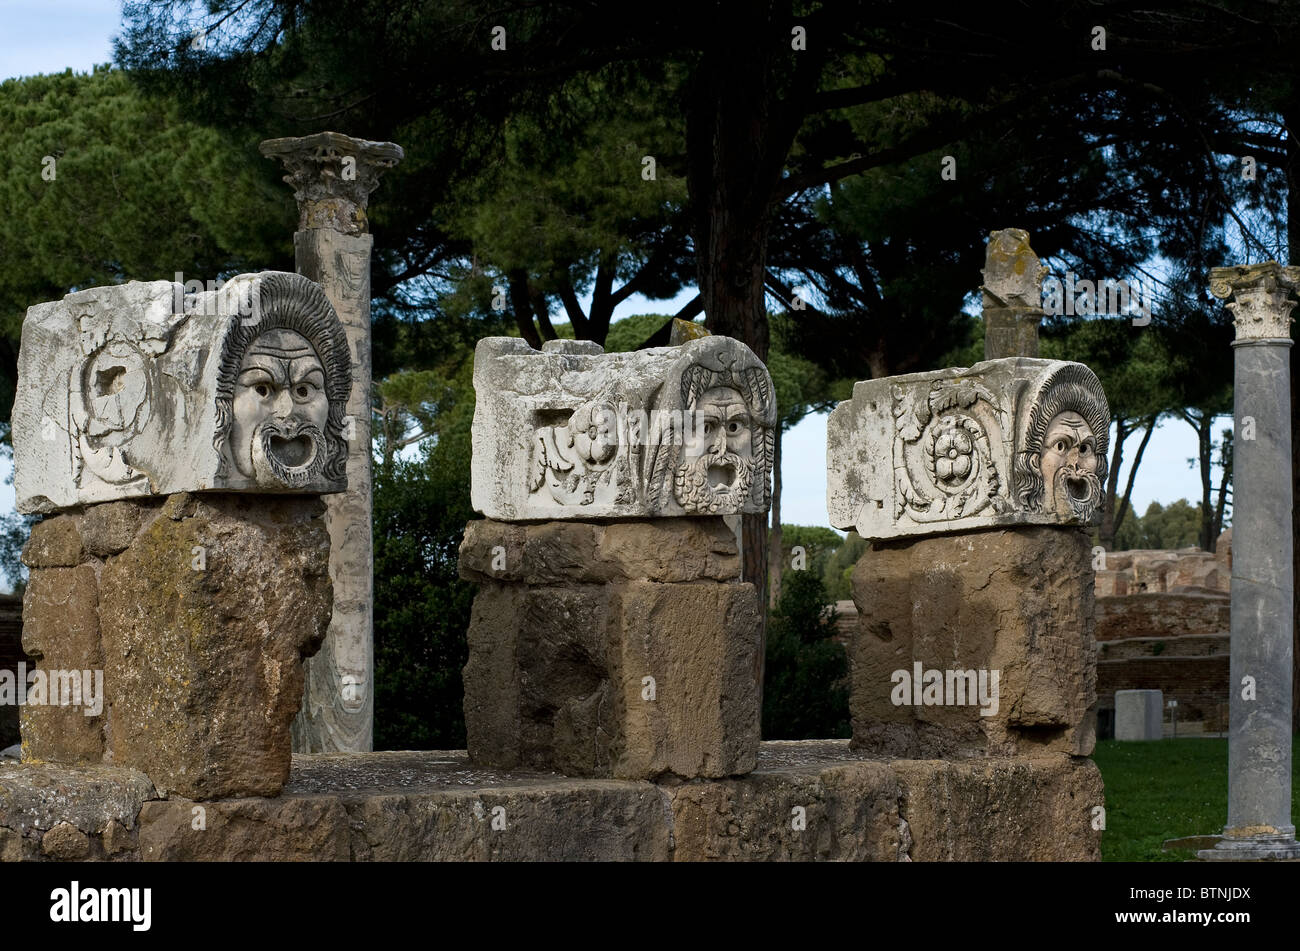 Stone masks in the ancient theater. Ostia Antica, Rome, Italy - Stock Image